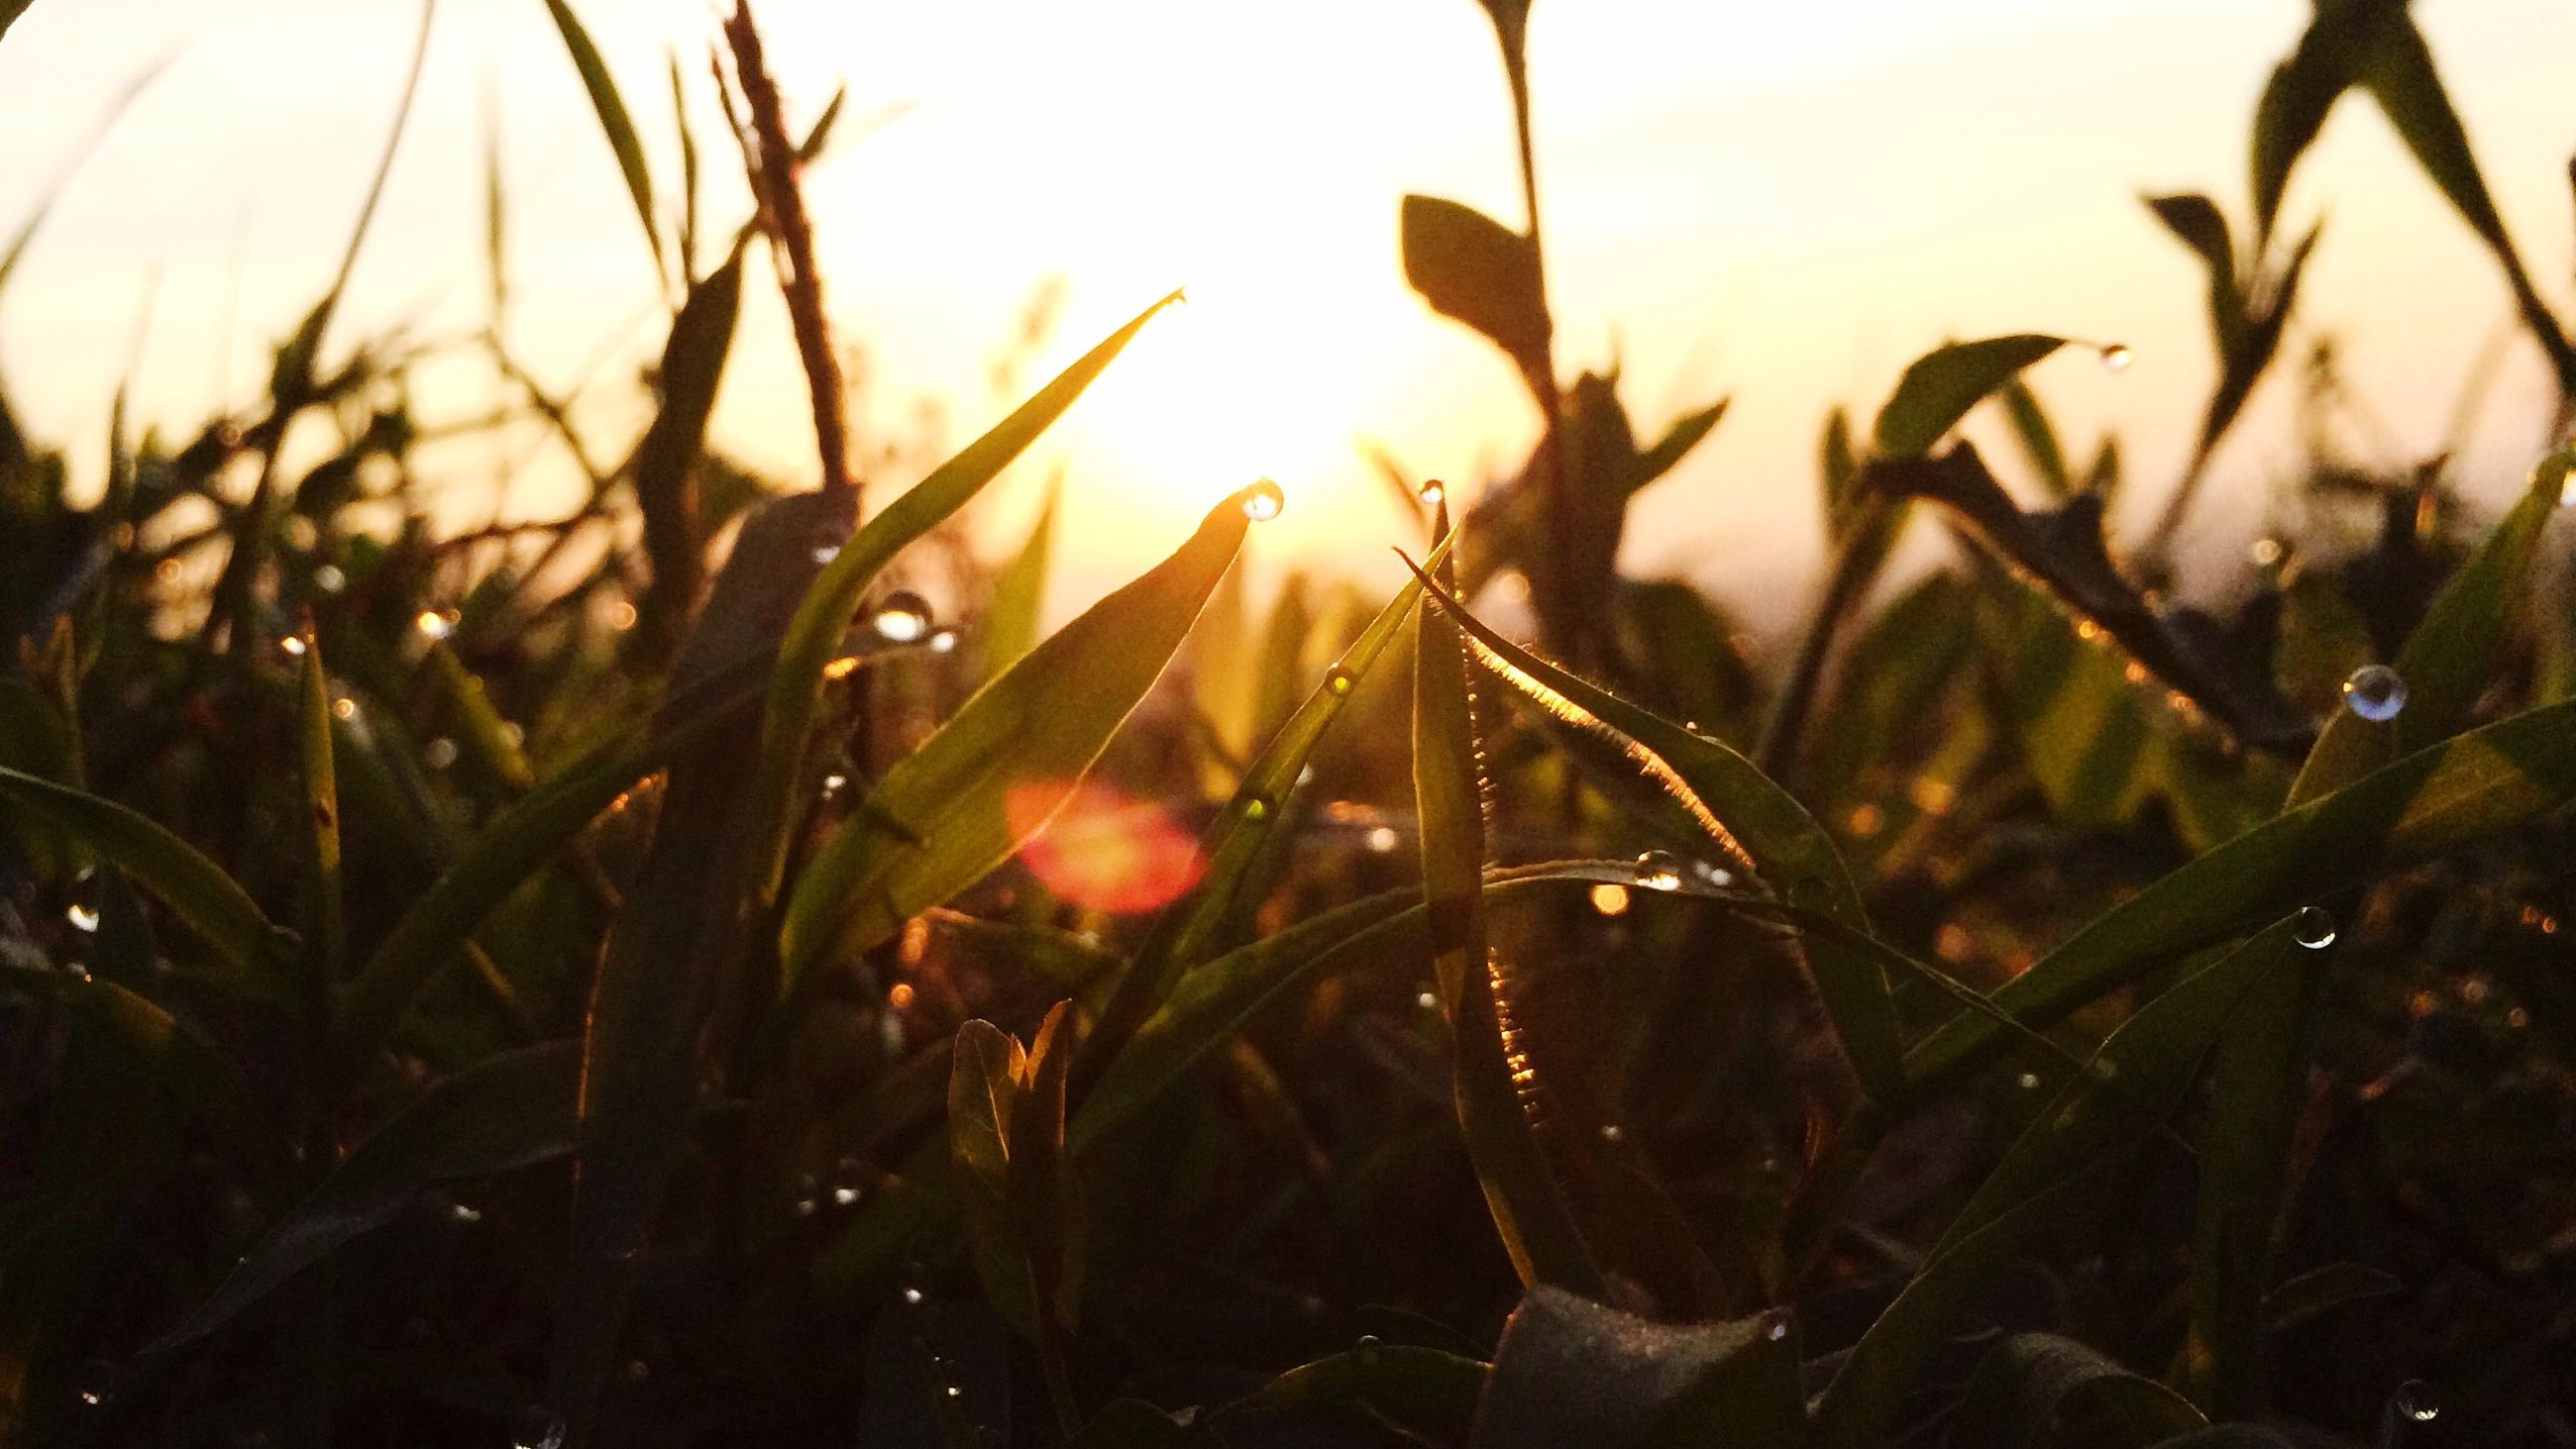 sun, grass, growth, plant, close-up, nature, focus on foreground, beauty in nature, sunset, tranquility, sunlight, drop, field, water, lens flare, selective focus, blade of grass, wet, dew, fragility